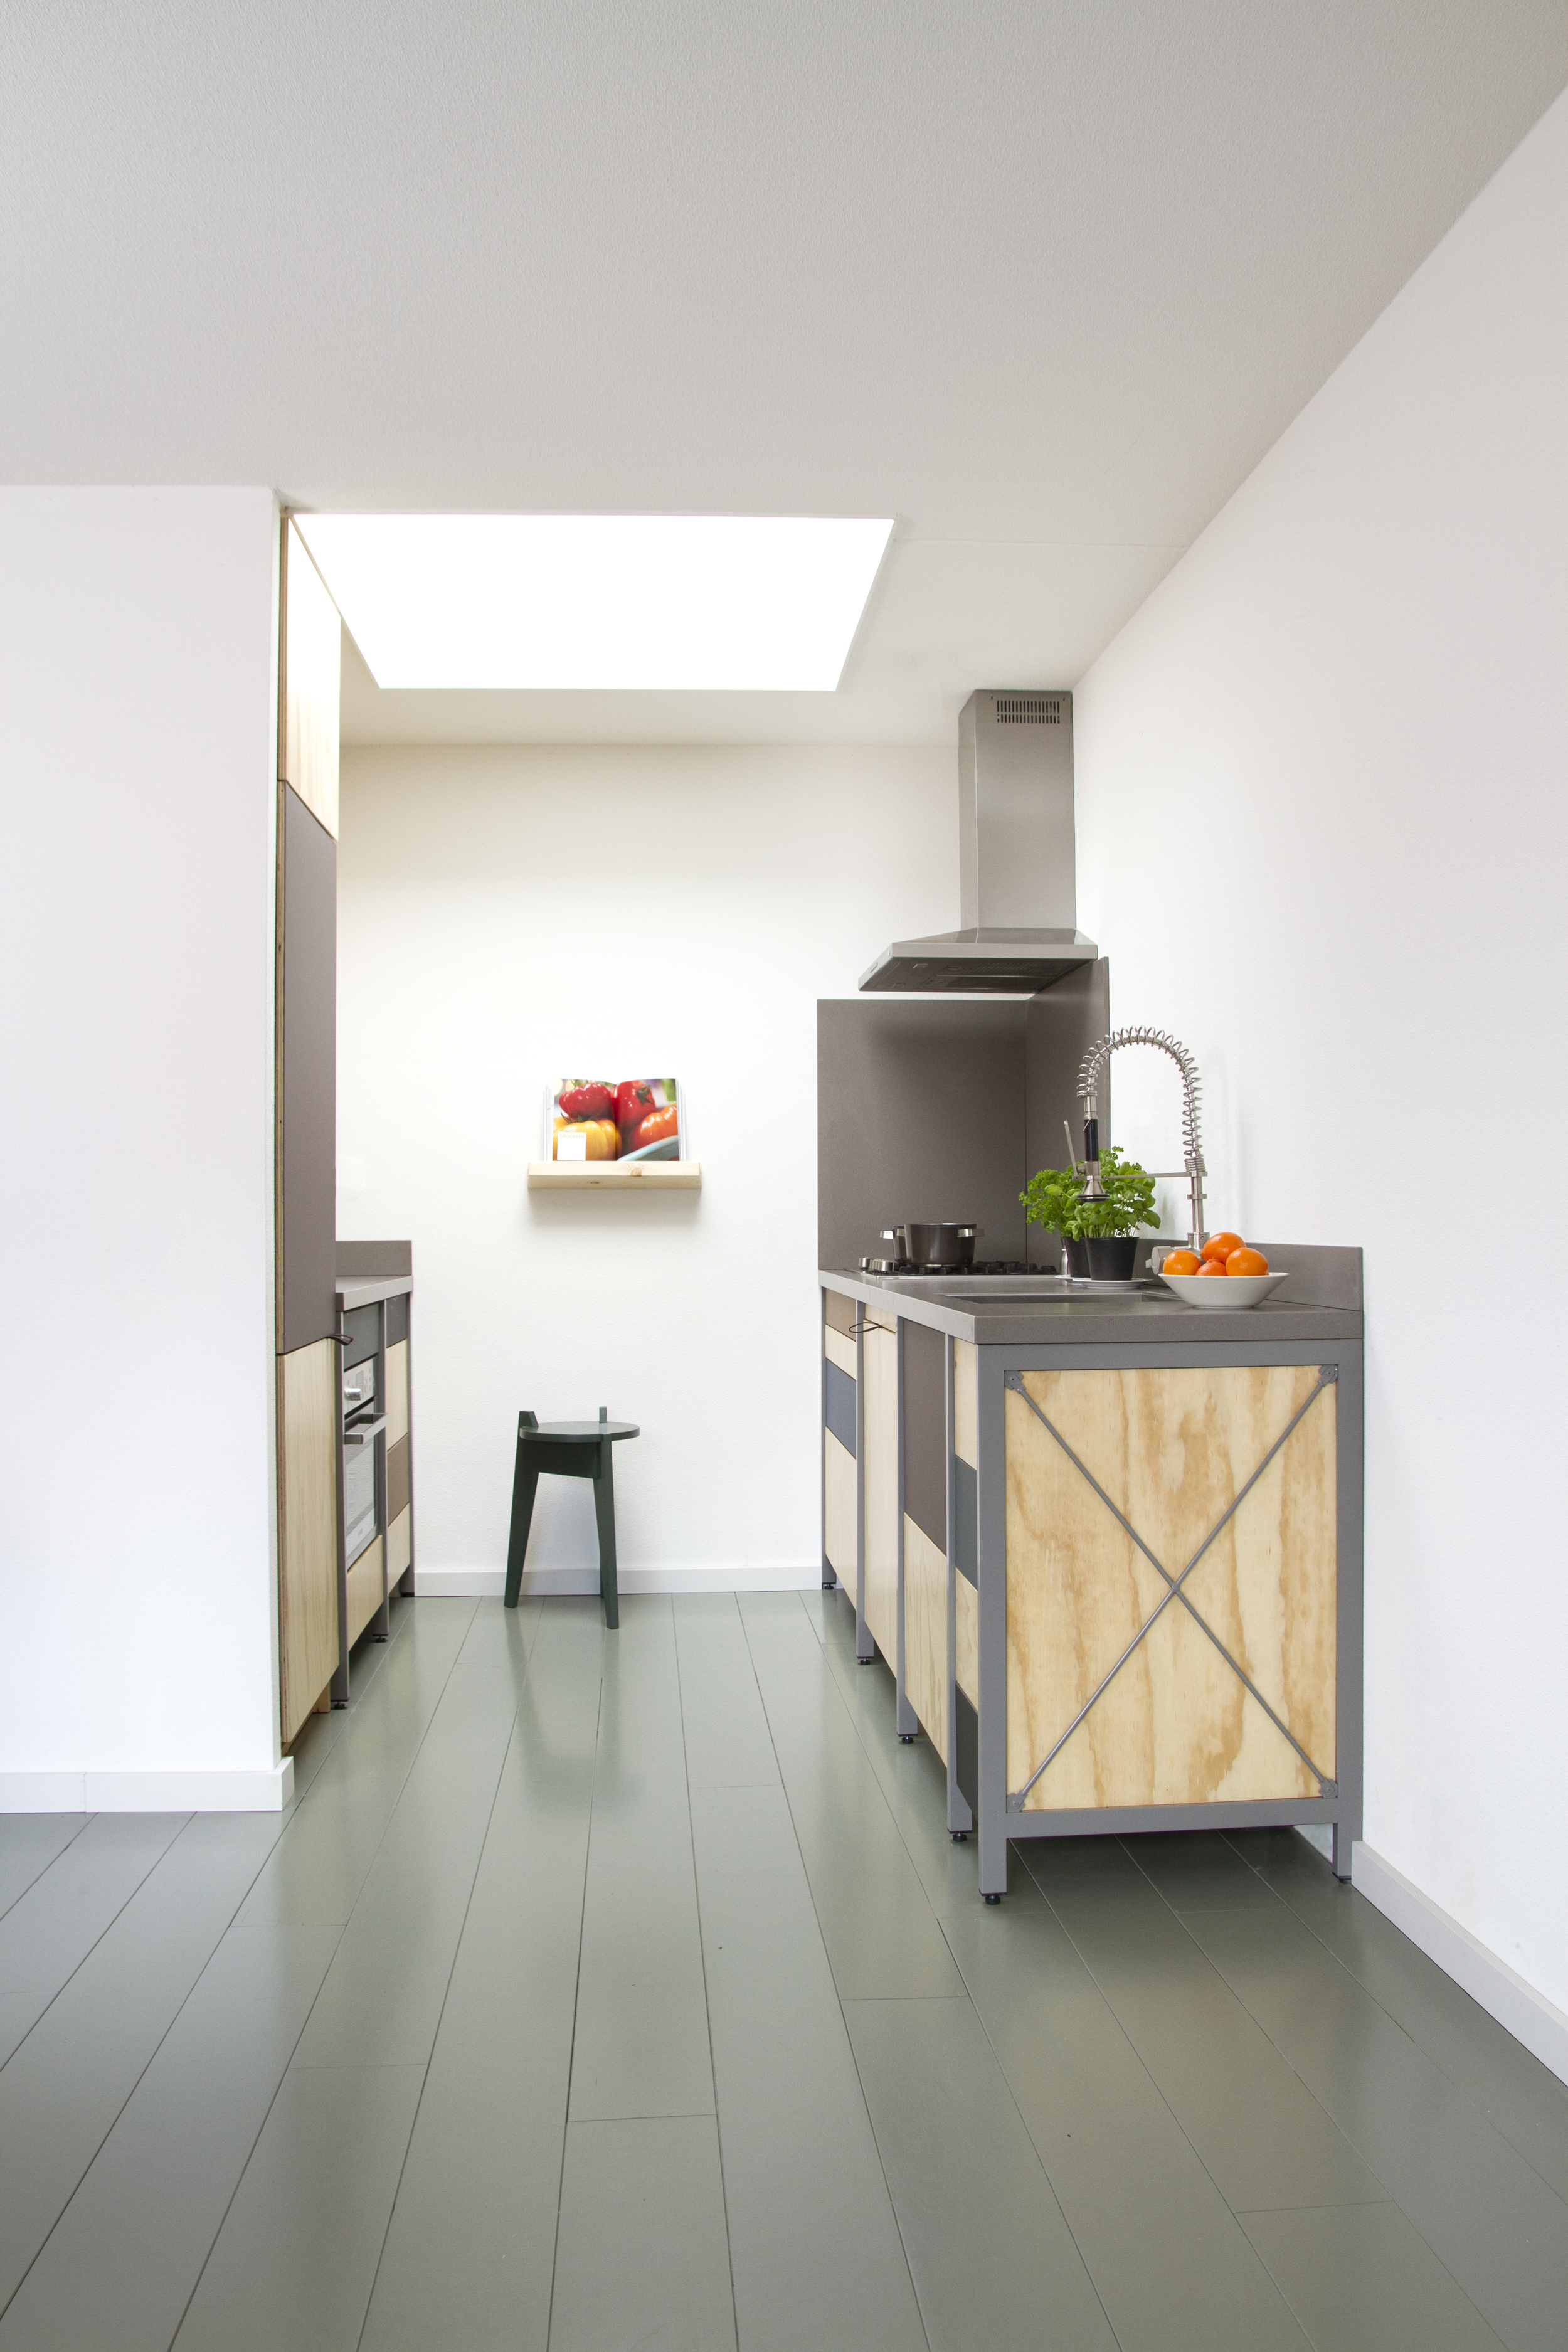 Most kitchens are constructed primarily from laminated chipboard. This material is cheap but quite weak compared to other kinds of engineered woods such as plywood. Also is it not so eco-friendly due to the resin being used to keep the wood chips together.